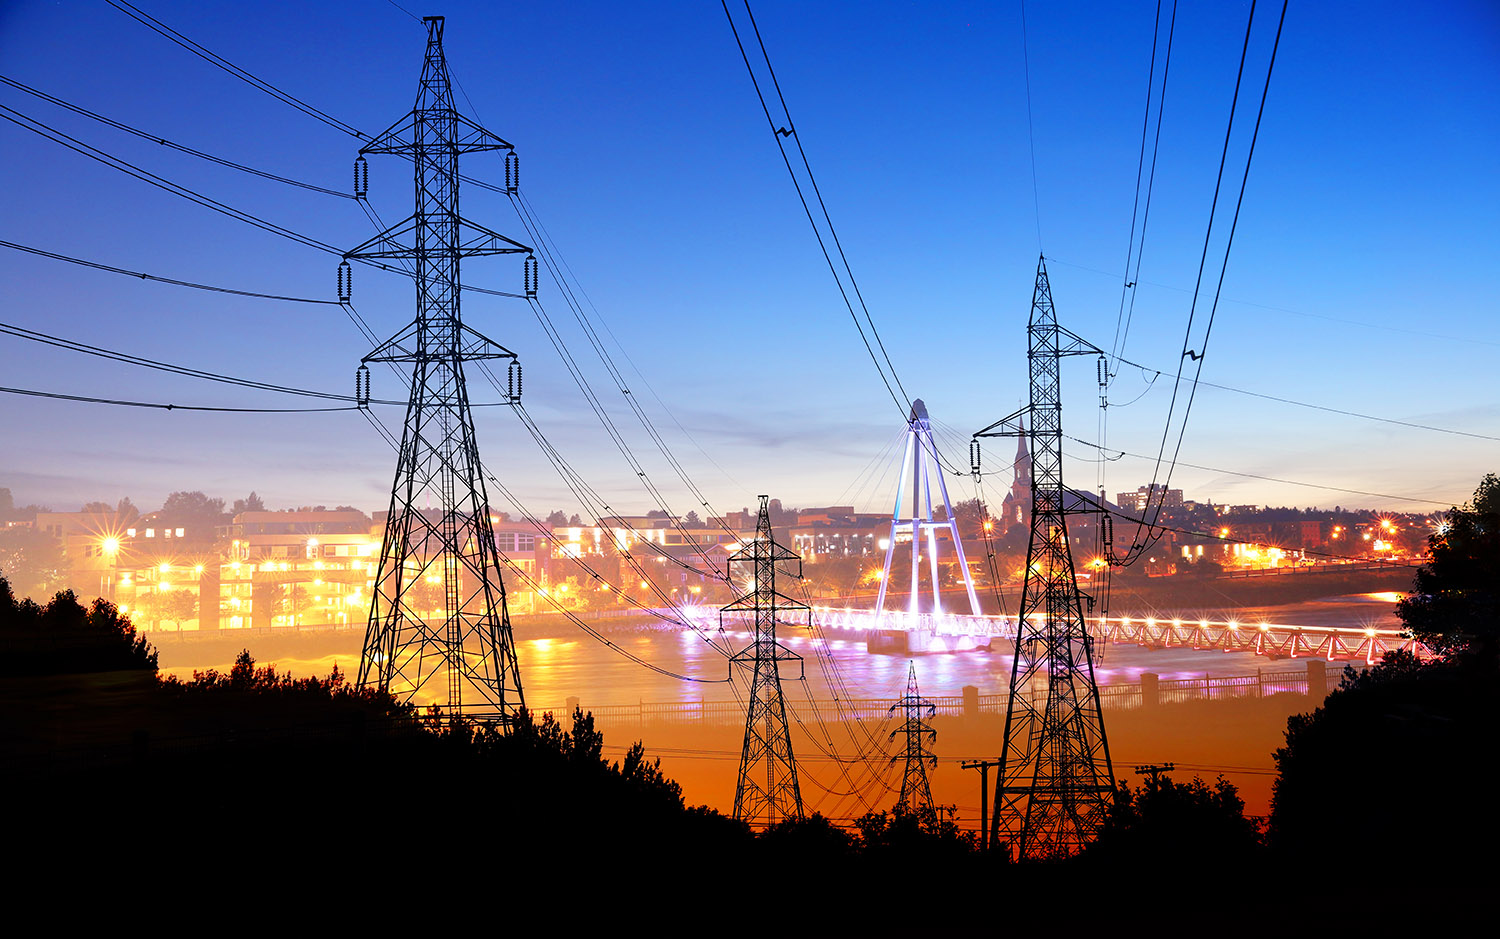 Small Town Electrification at Sunset - Colorful Stock Photos